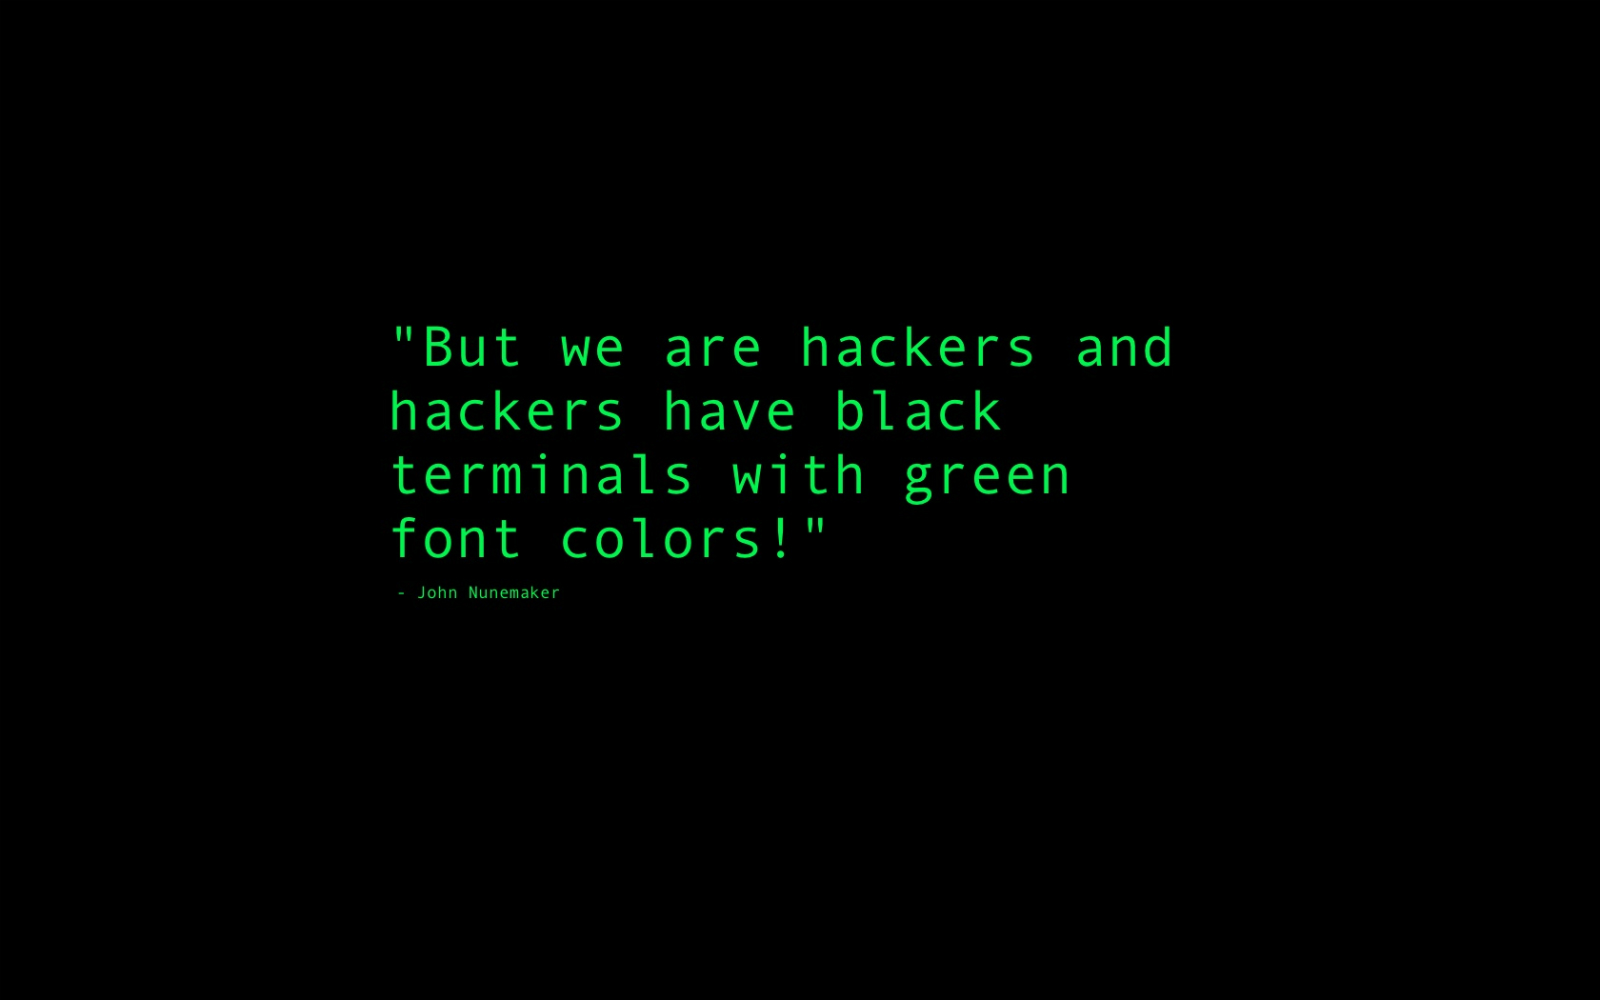 http://2.bp.blogspot.com/-BOLfkySATiI/TlirBuLiQ3I/AAAAAAAACvQ/JF44pL_spas/s1600/www.Vvallpaper.net_john_nunemaker_hacker_pirate_black_and_green_hack_hacking_text_document_desktop_wallpaper_background.jpg